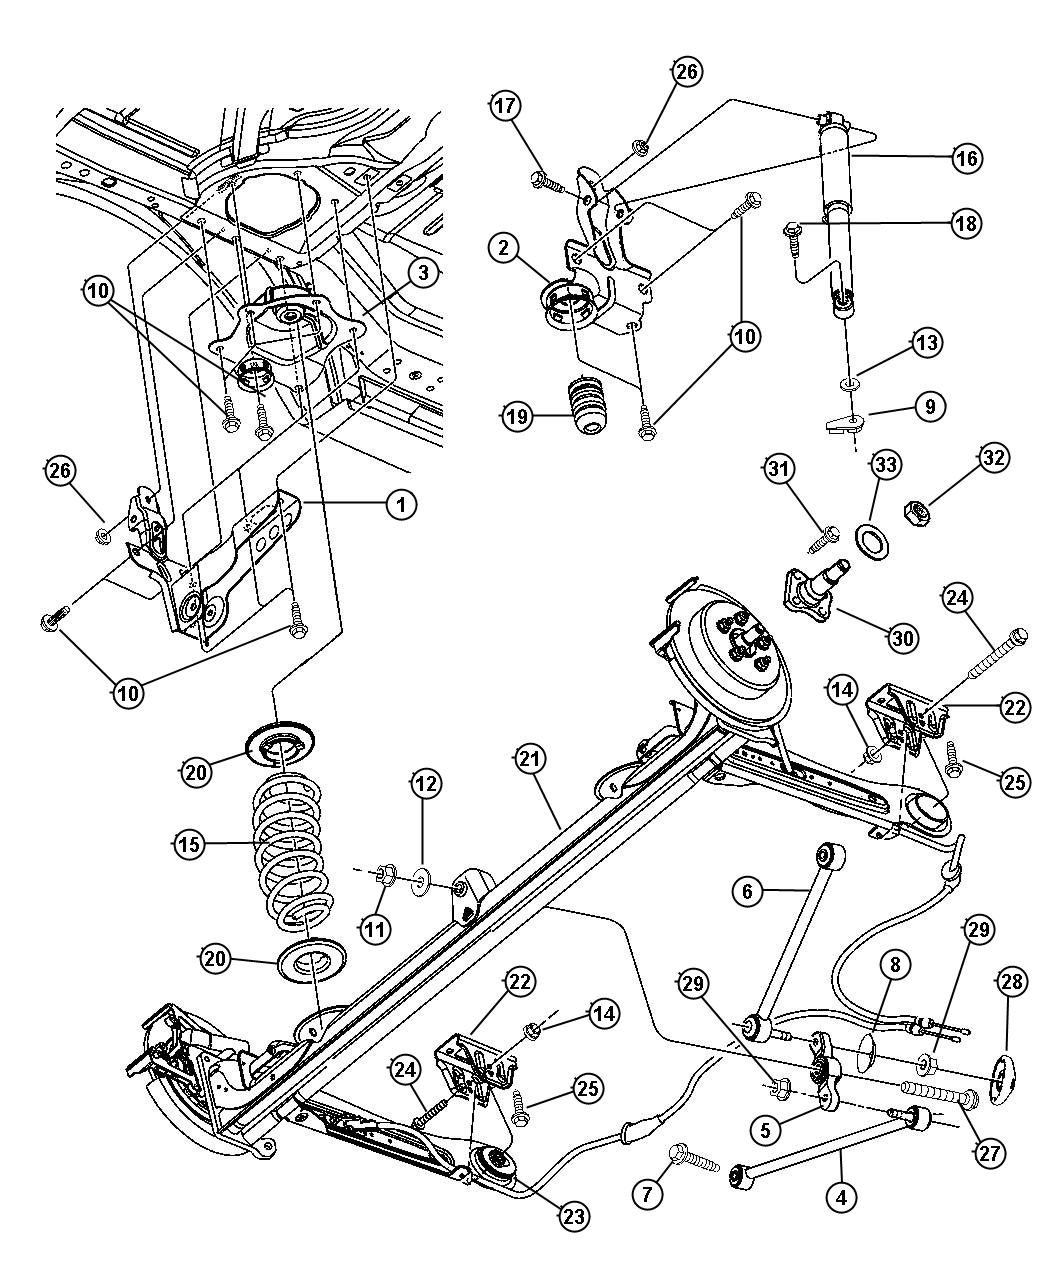 2001 Pt Cruiser Engine Diagram Another Blog About Wiring Rear Suspension Belt